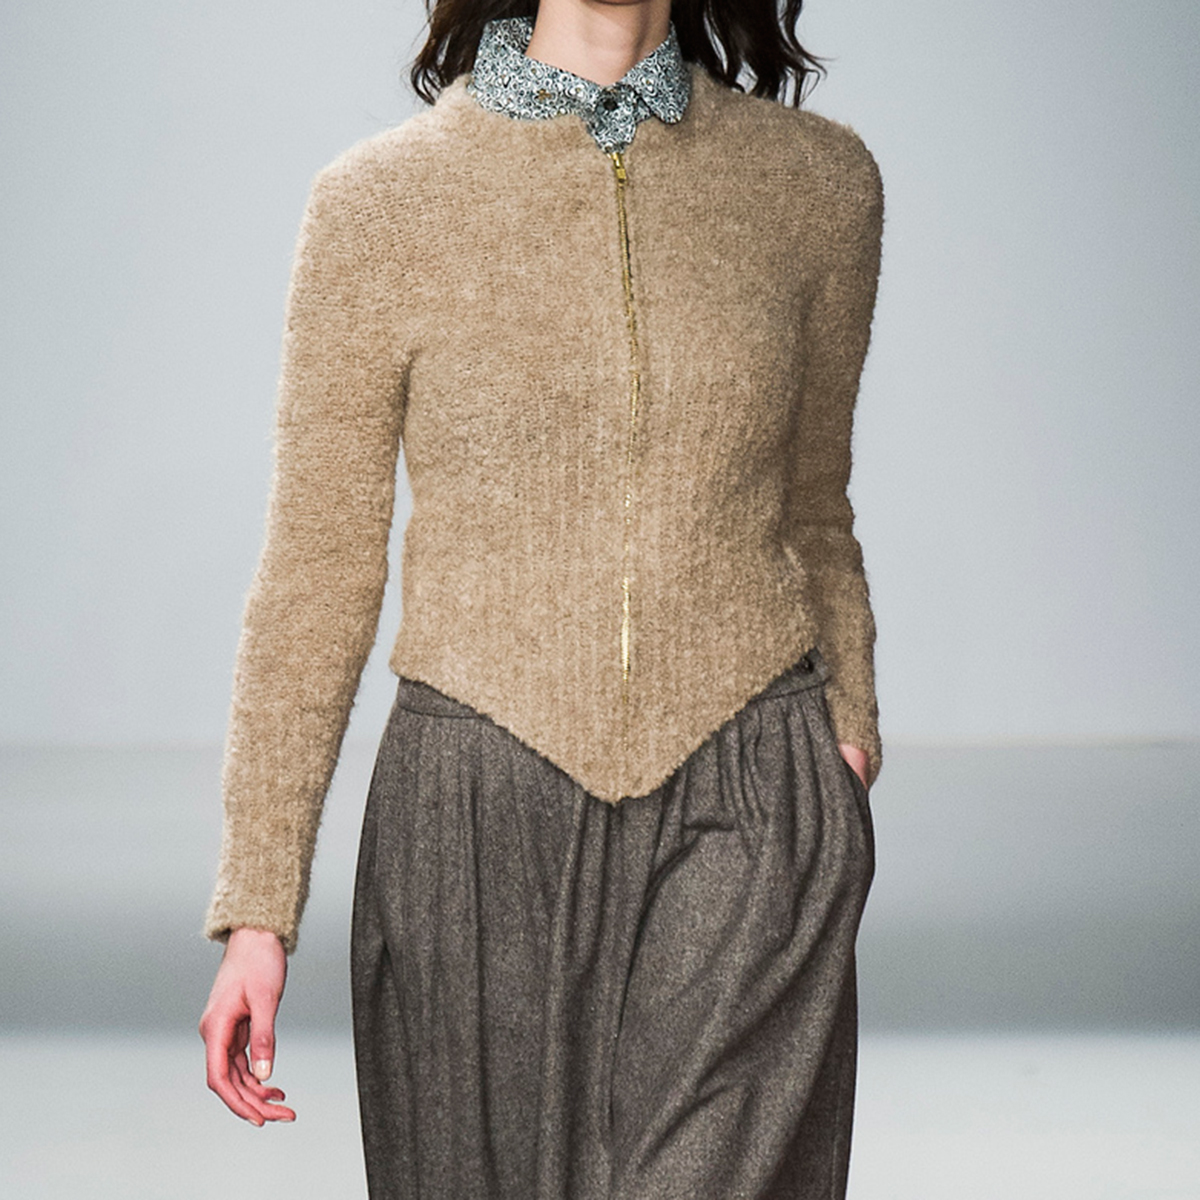 New ways to wear a cardigan this Autumn